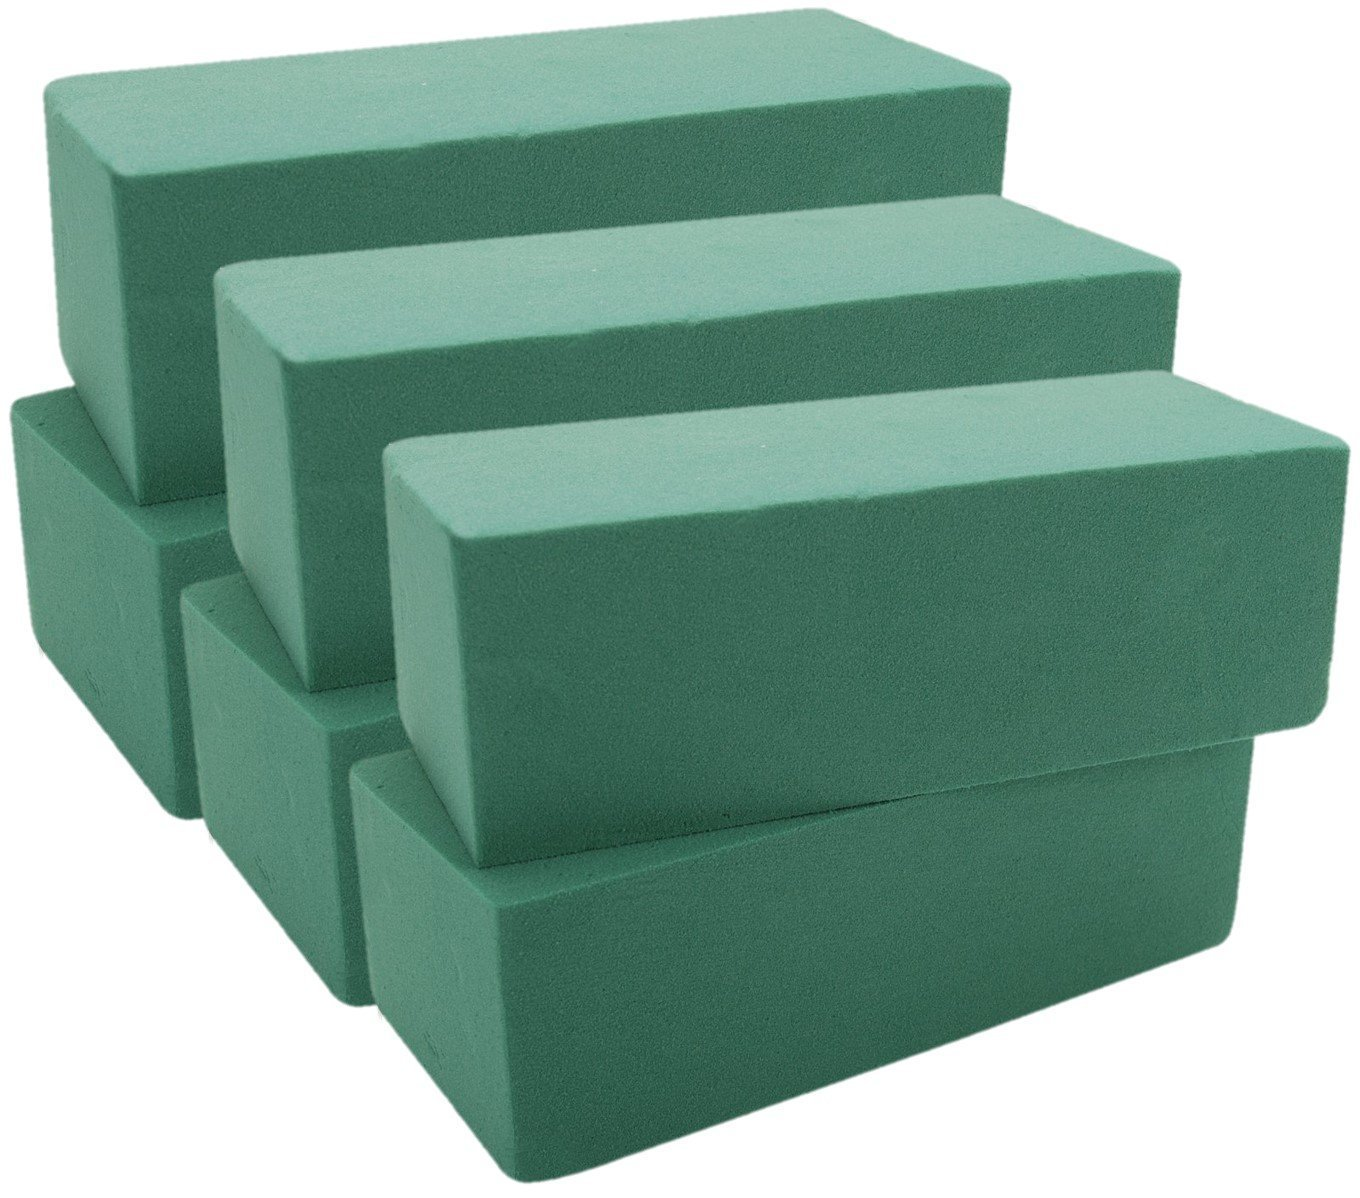 "Floral Foam Bricks Green Styrofoam Wet Foam Blocks 3"" X 4"" X 9"" 6/Pkg Green With Two Premium Quality 1/2 Inch Floral Tape"